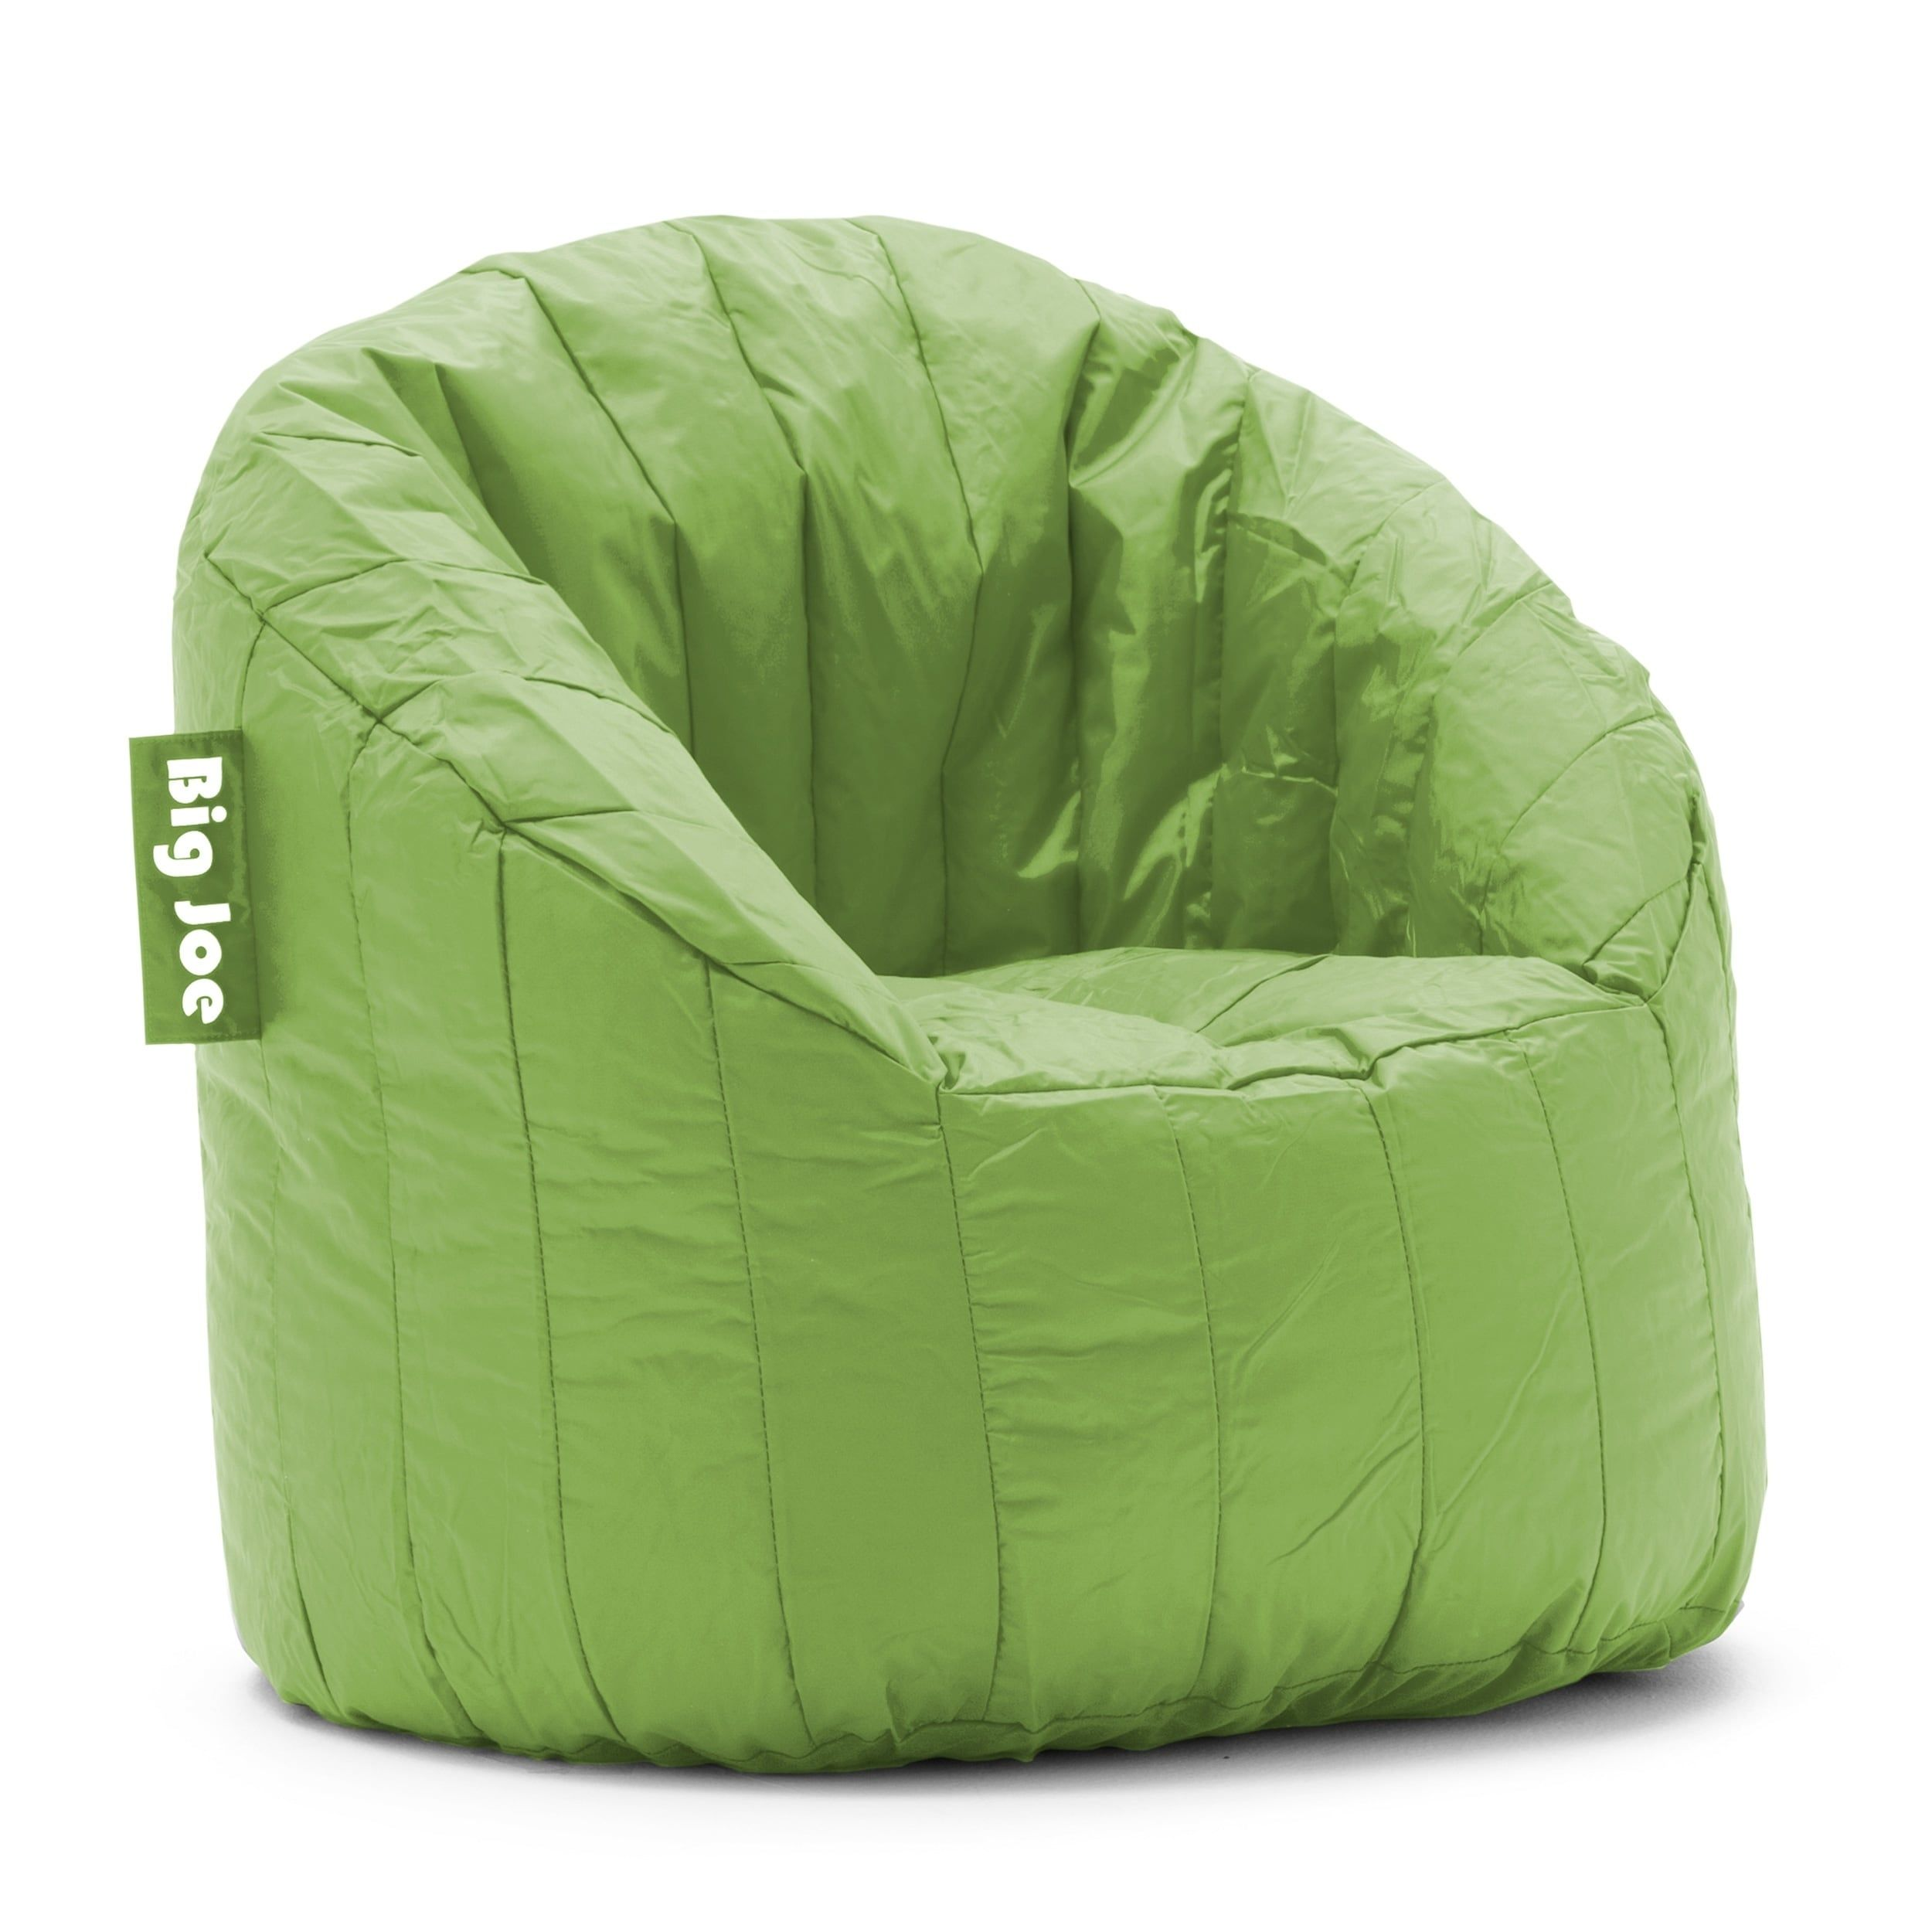 Big Joe Lumin Chair Multiple Colors Indoor Wicker Dining Chairs Bean Bag Solid Spicy Lime